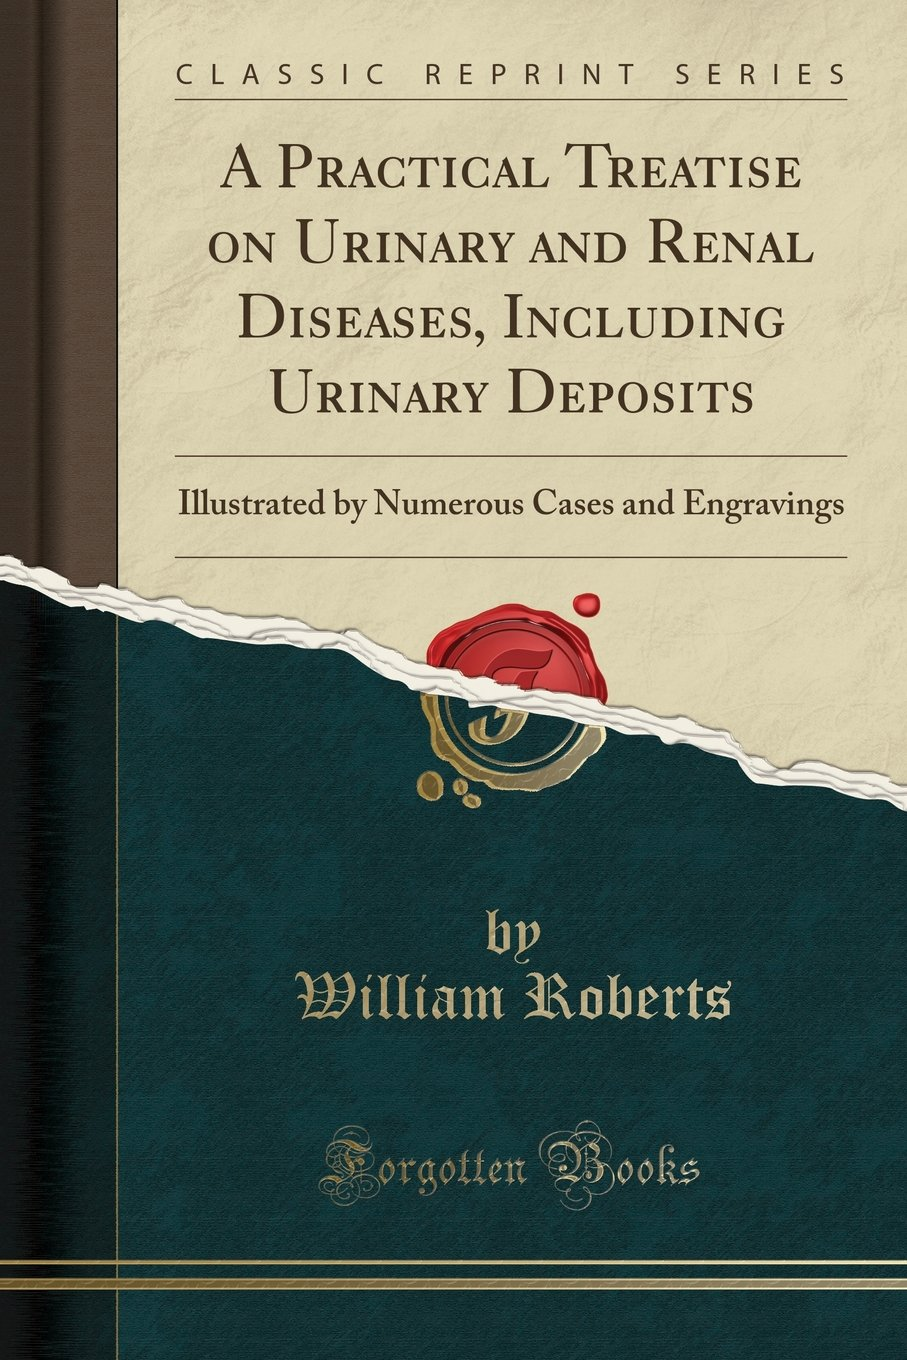 Download A Practical Treatise on Urinary and Renal Diseases, Including Urinary Deposits: Illustrated by Numerous Cases and Engravings (Classic Reprint) pdf